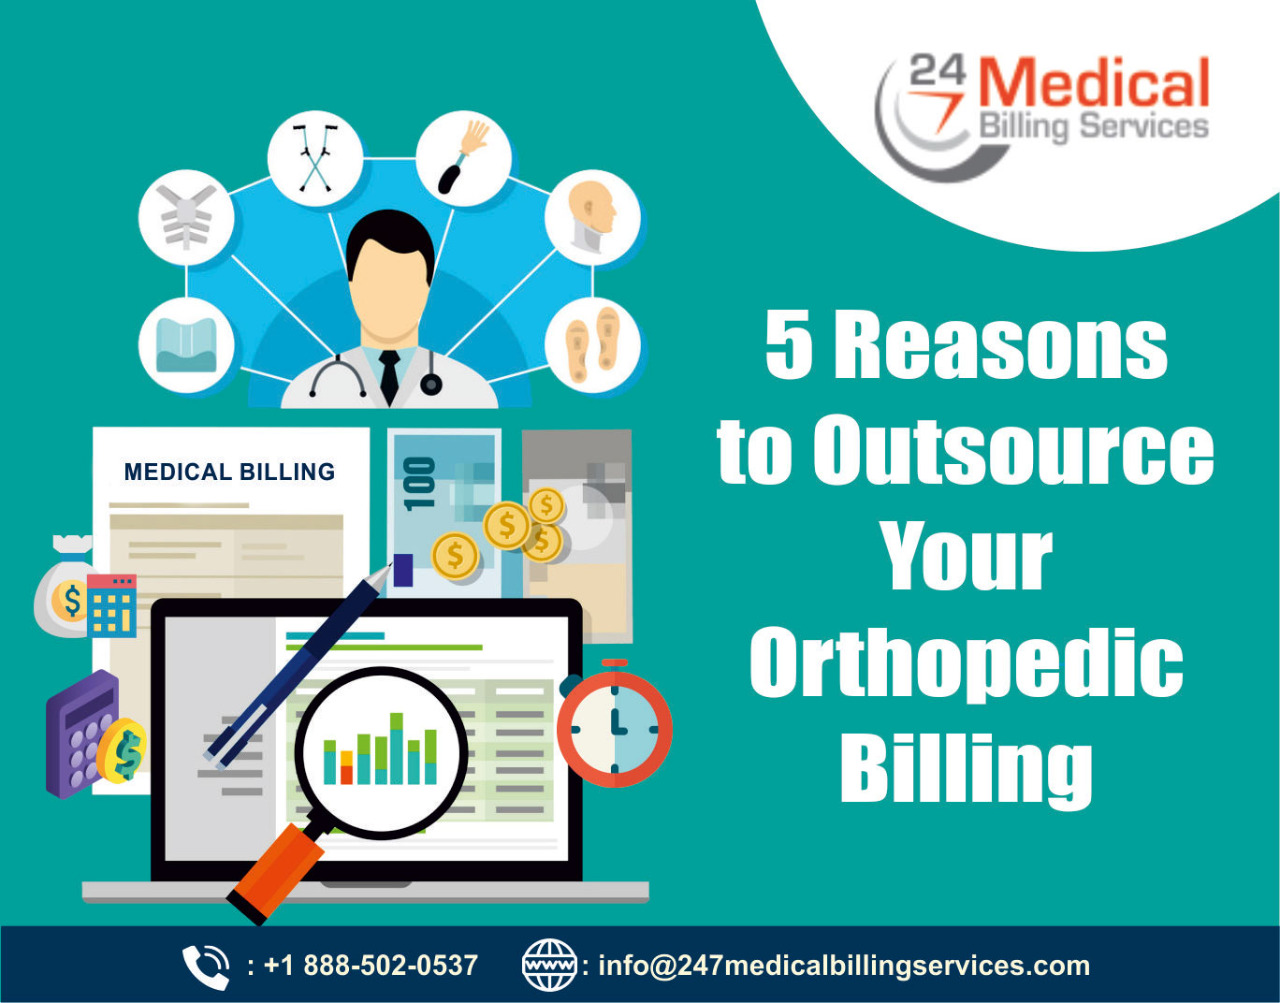 5 Reasons to Outsource Your Orthopaedic Billing, Medical Billing Services, Orthopaedic billing, Oursourcing medical billing